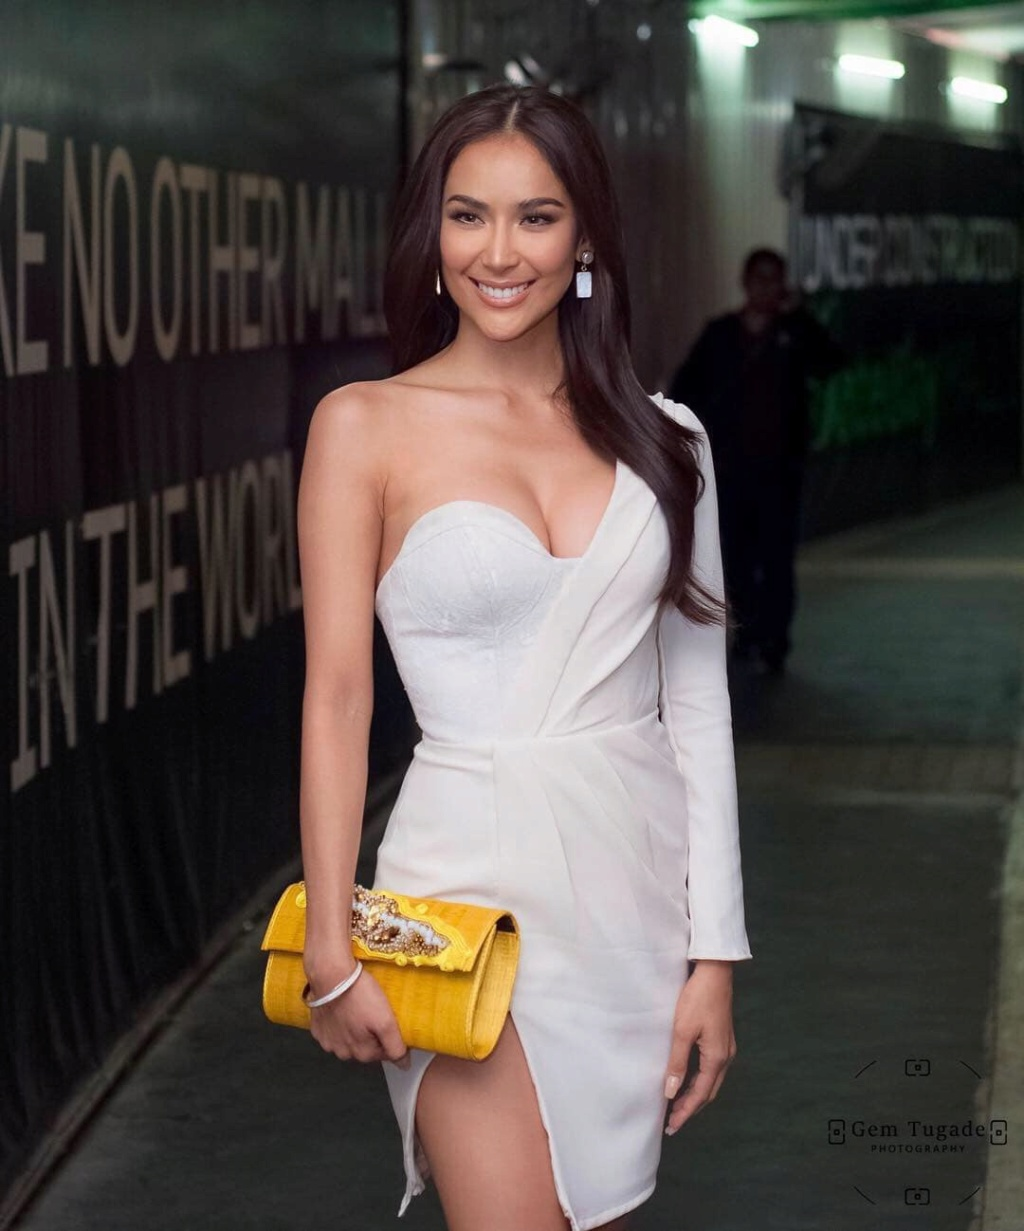 Road to Binibining Pilipinas 2019 - Results!! - Page 7 53931110